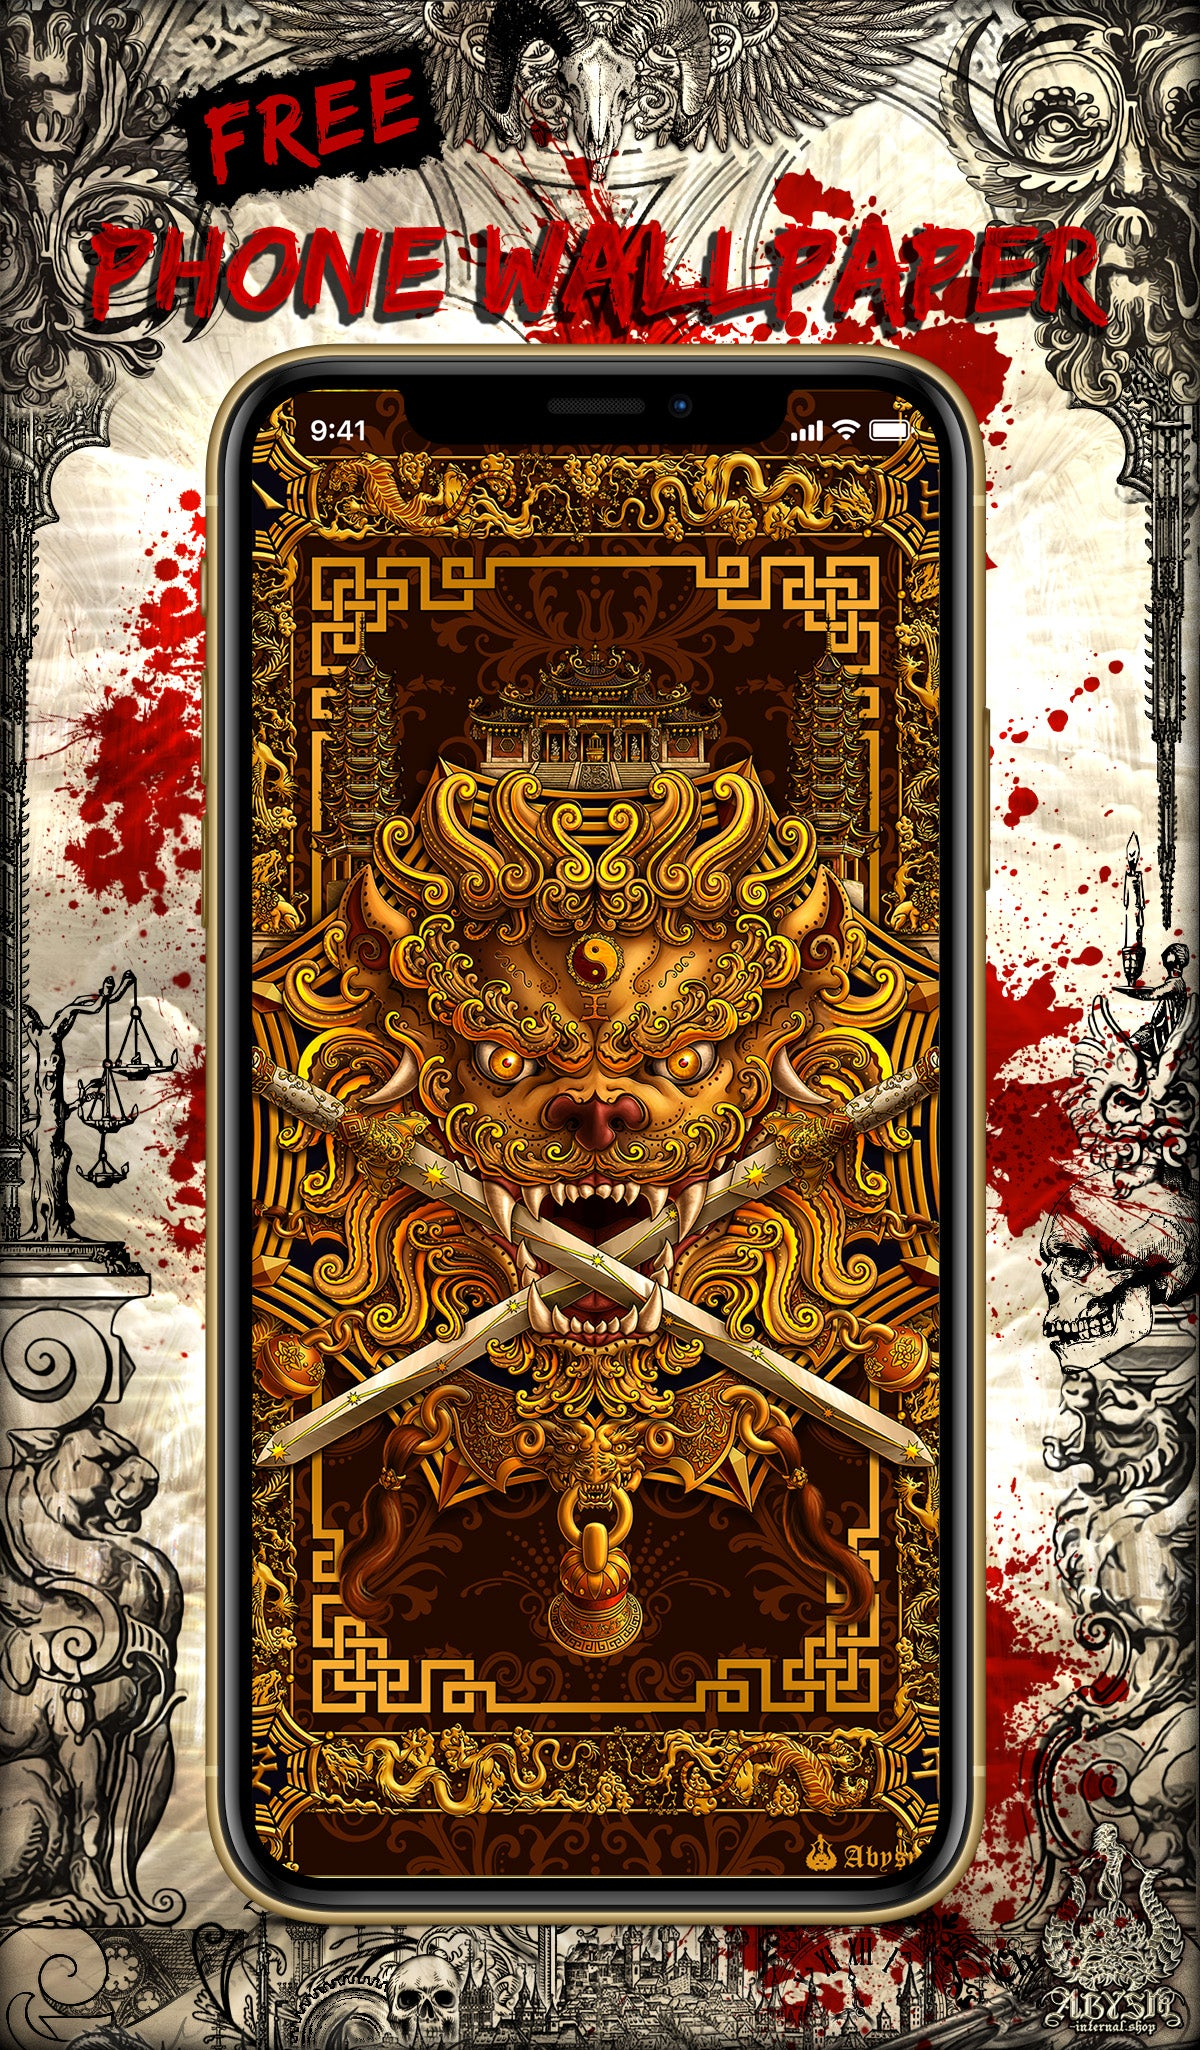 Free Wallpaper for Phone, depicting Gold Chinese Sword Lion from Tainan, Taiwan